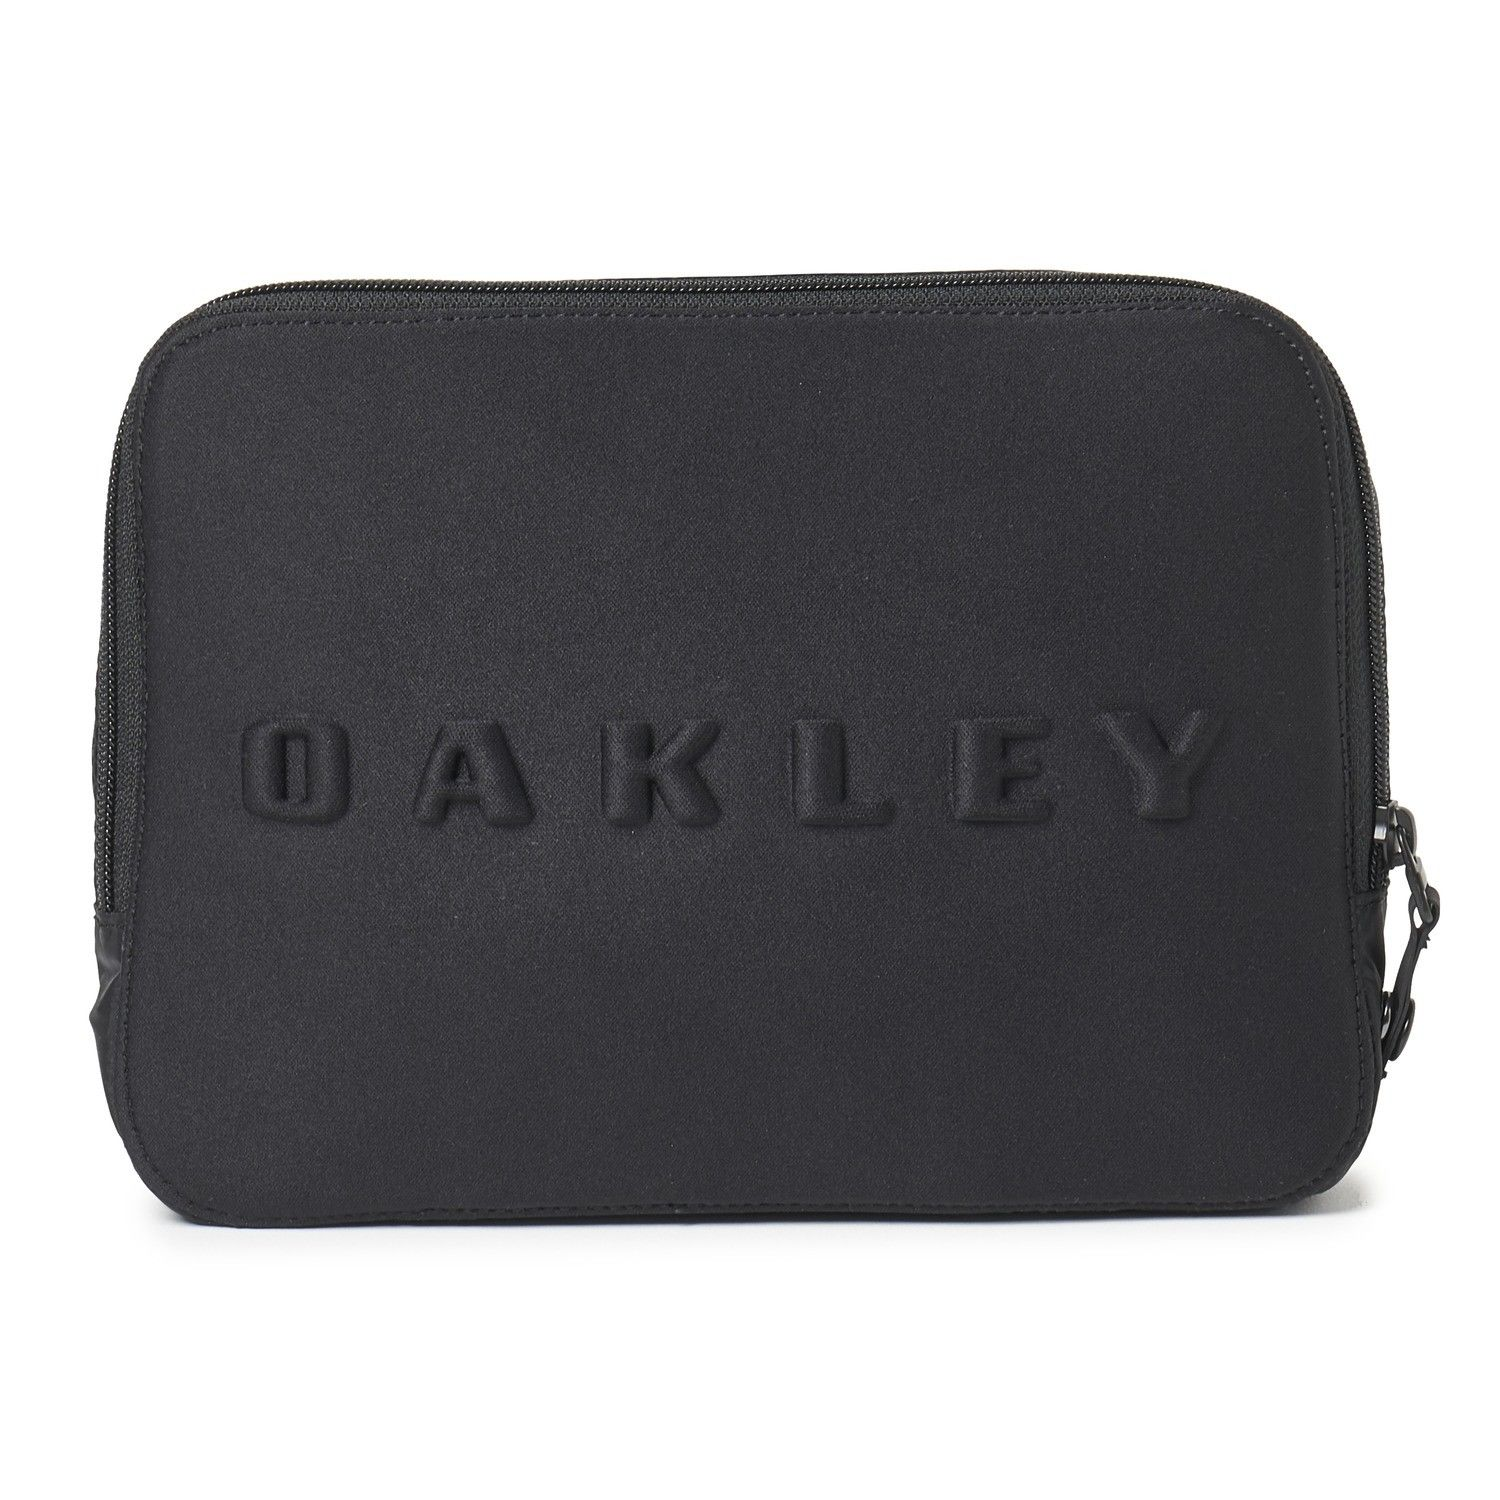 OAKLEY PACKABLE BACKPACK - BLACKOUT